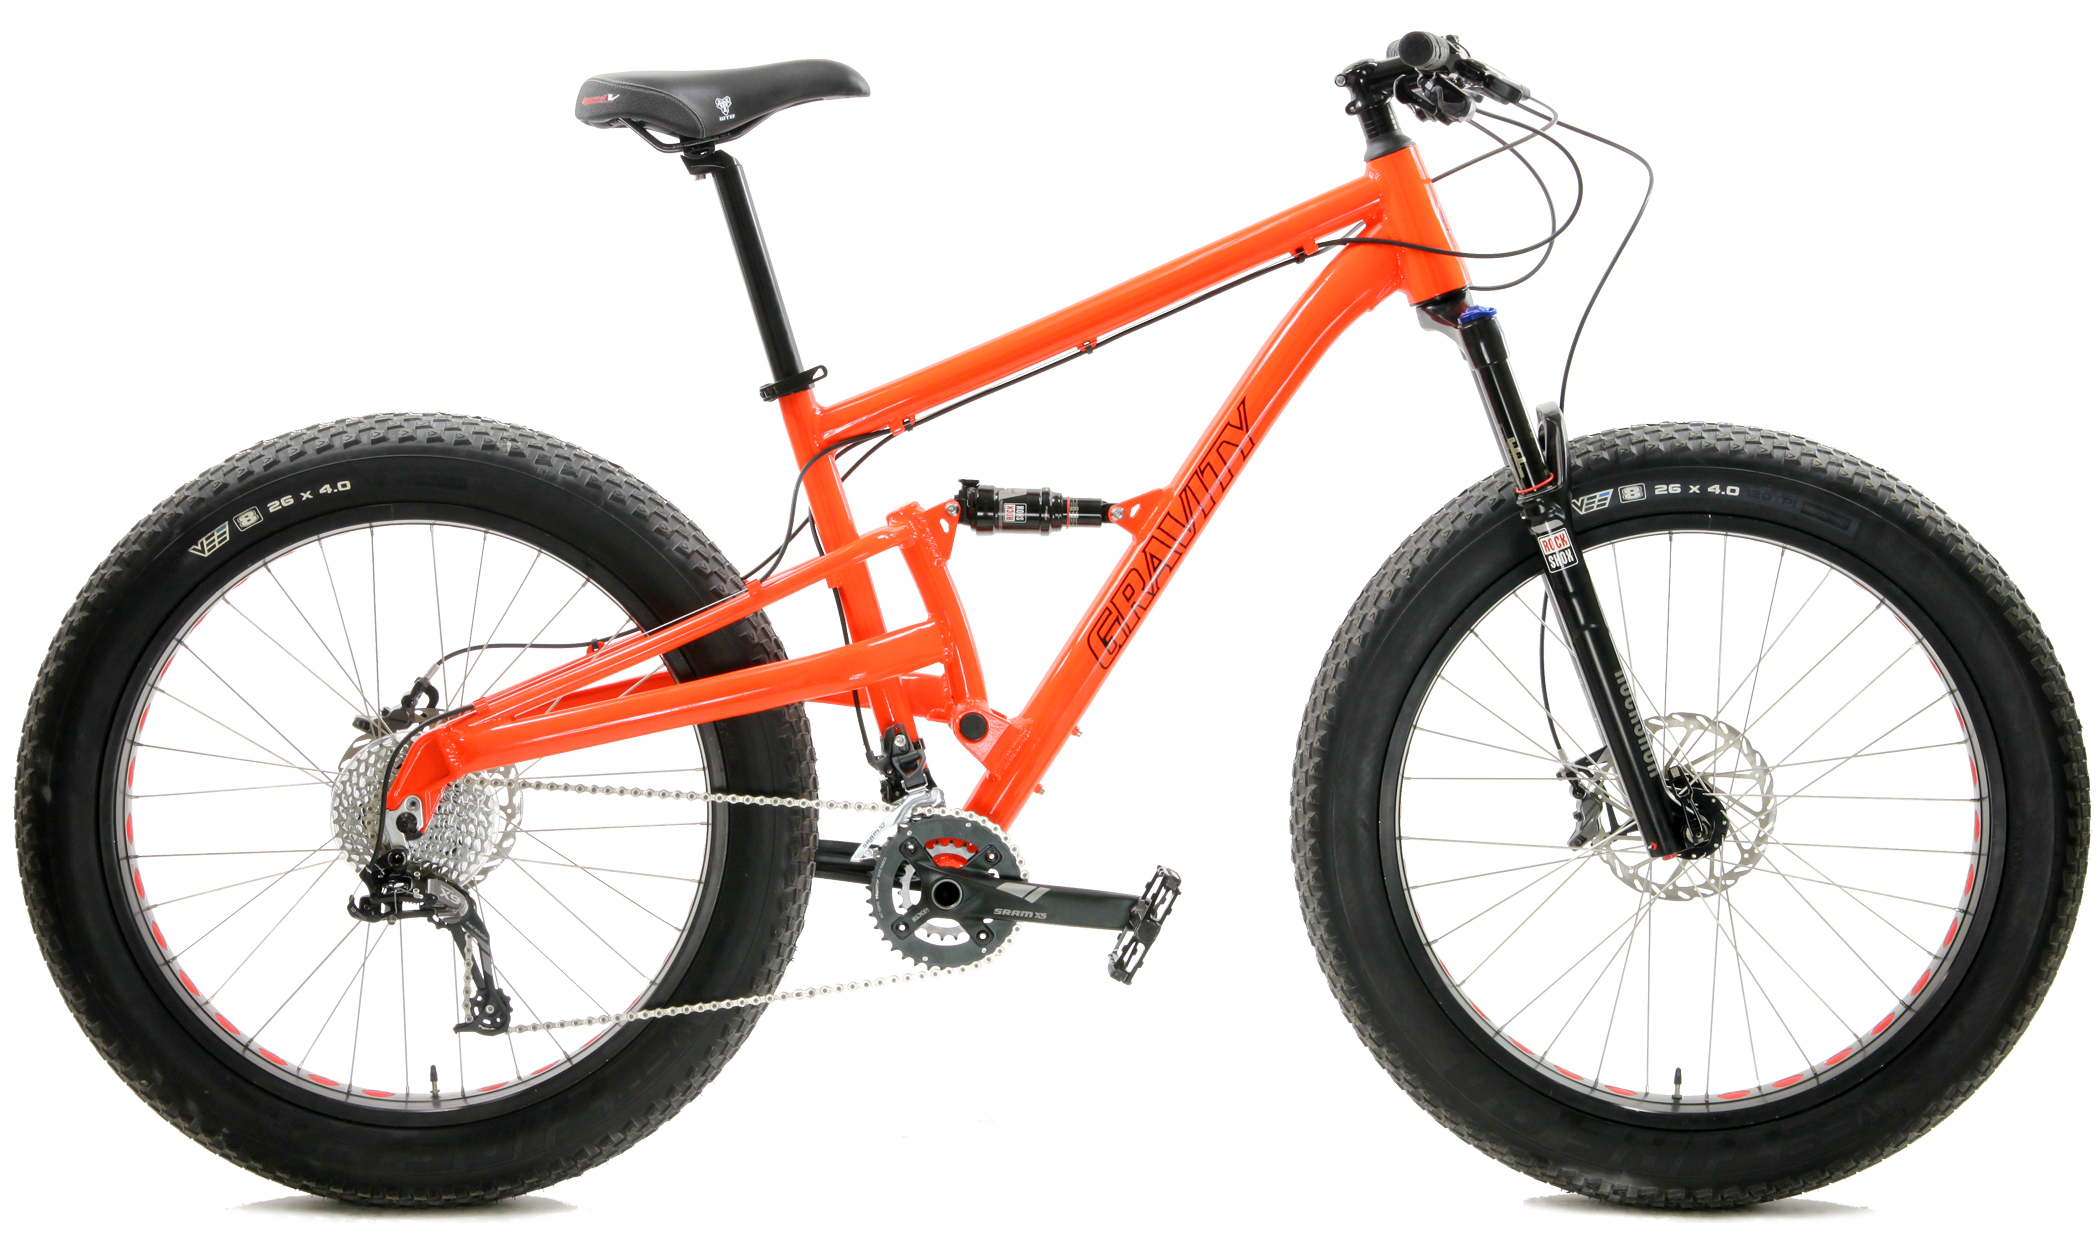 Bikes Gravity Quigley Full Suspension Fat Bike Bluto Equipped Image